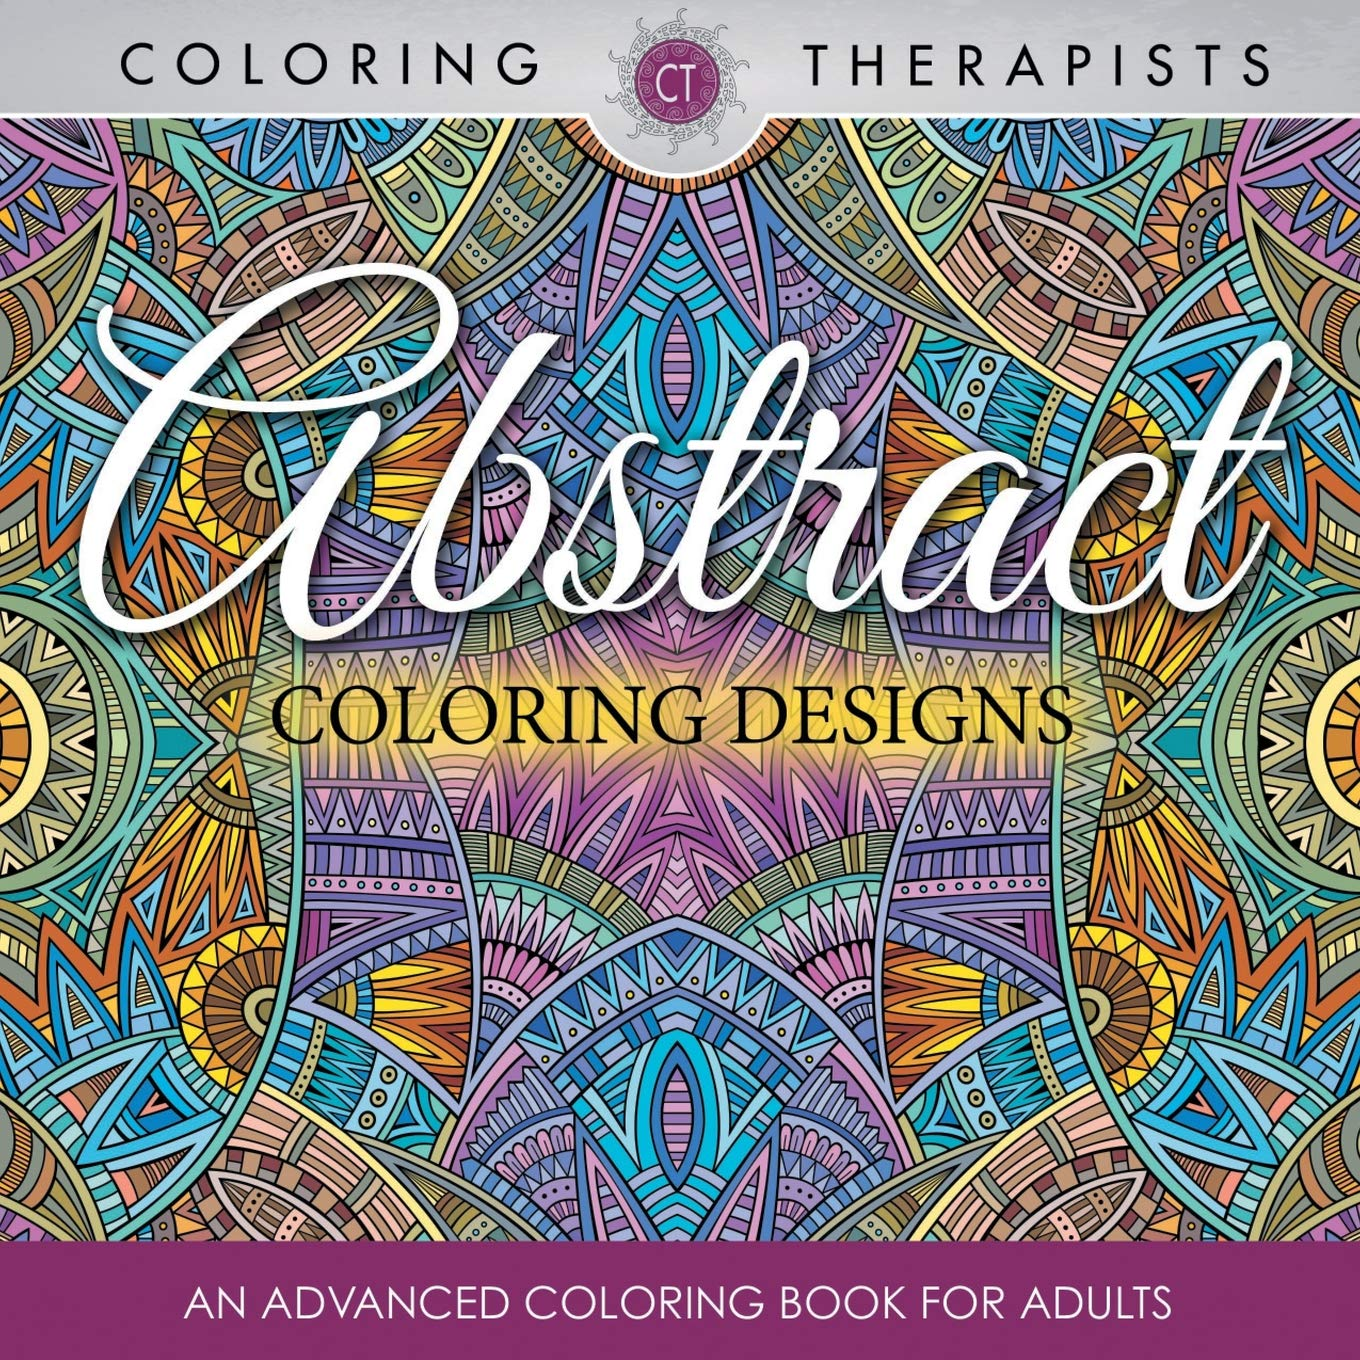 Amazon.com: Abstract Coloring Designs: An Advanced Coloring ...